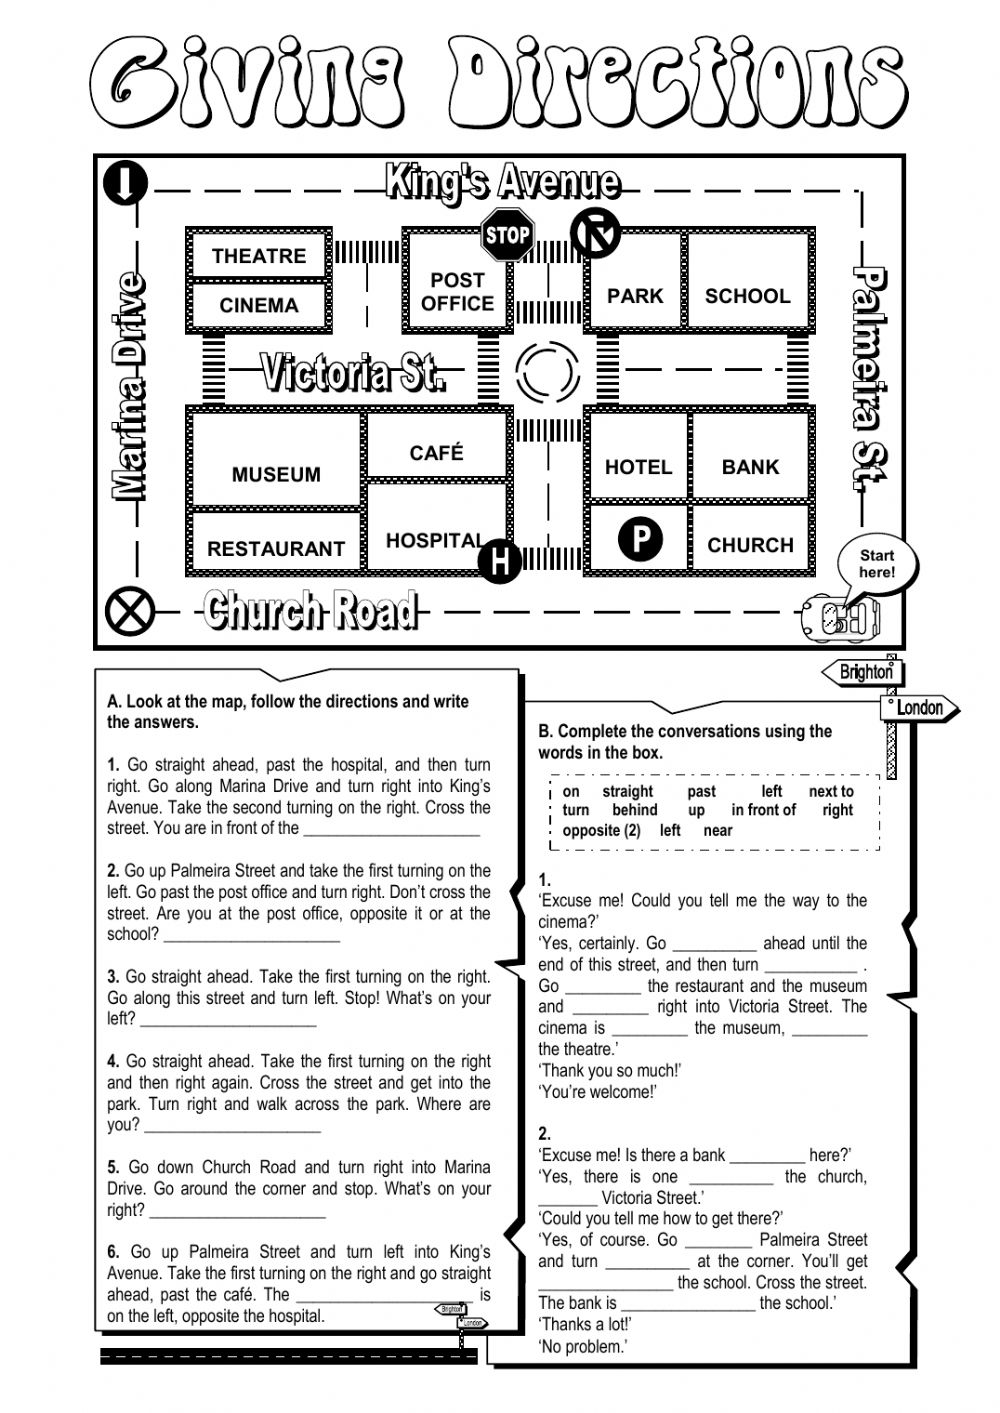 Giving directions Interactive worksheet – Directions Worksheet